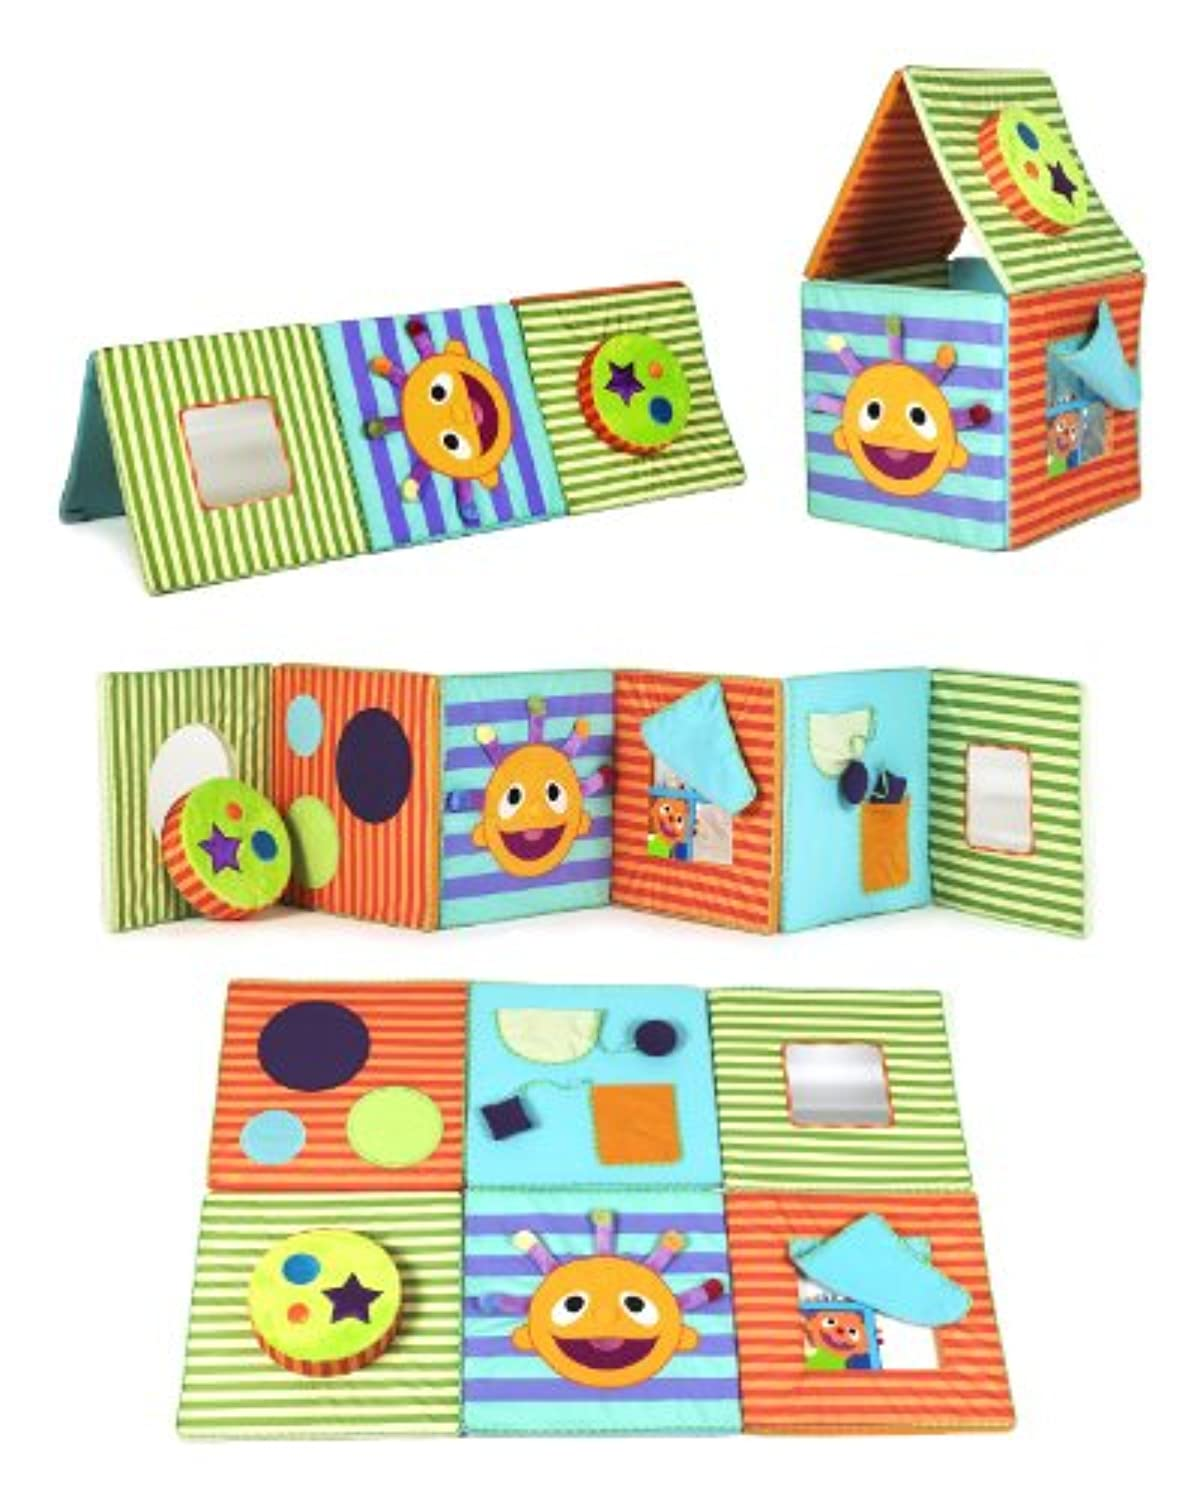 eebee's adventures Playmat and Activity Playhouse by Every Baby Company